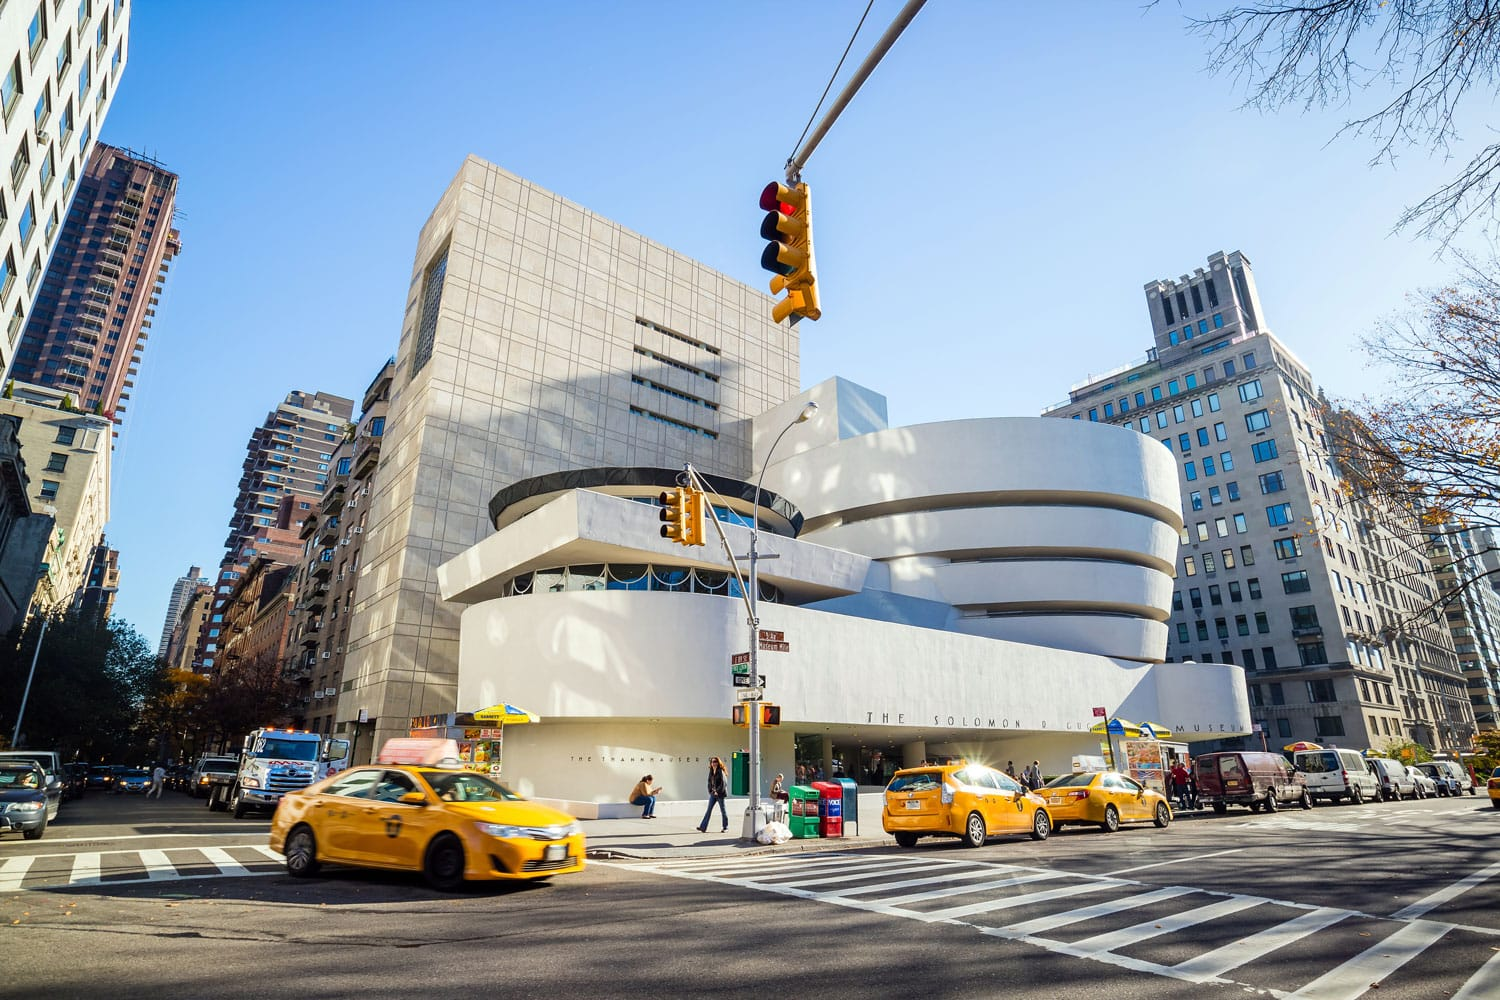 The Solomon R. Guggenheim Museum of modern and contemporary art in New York City